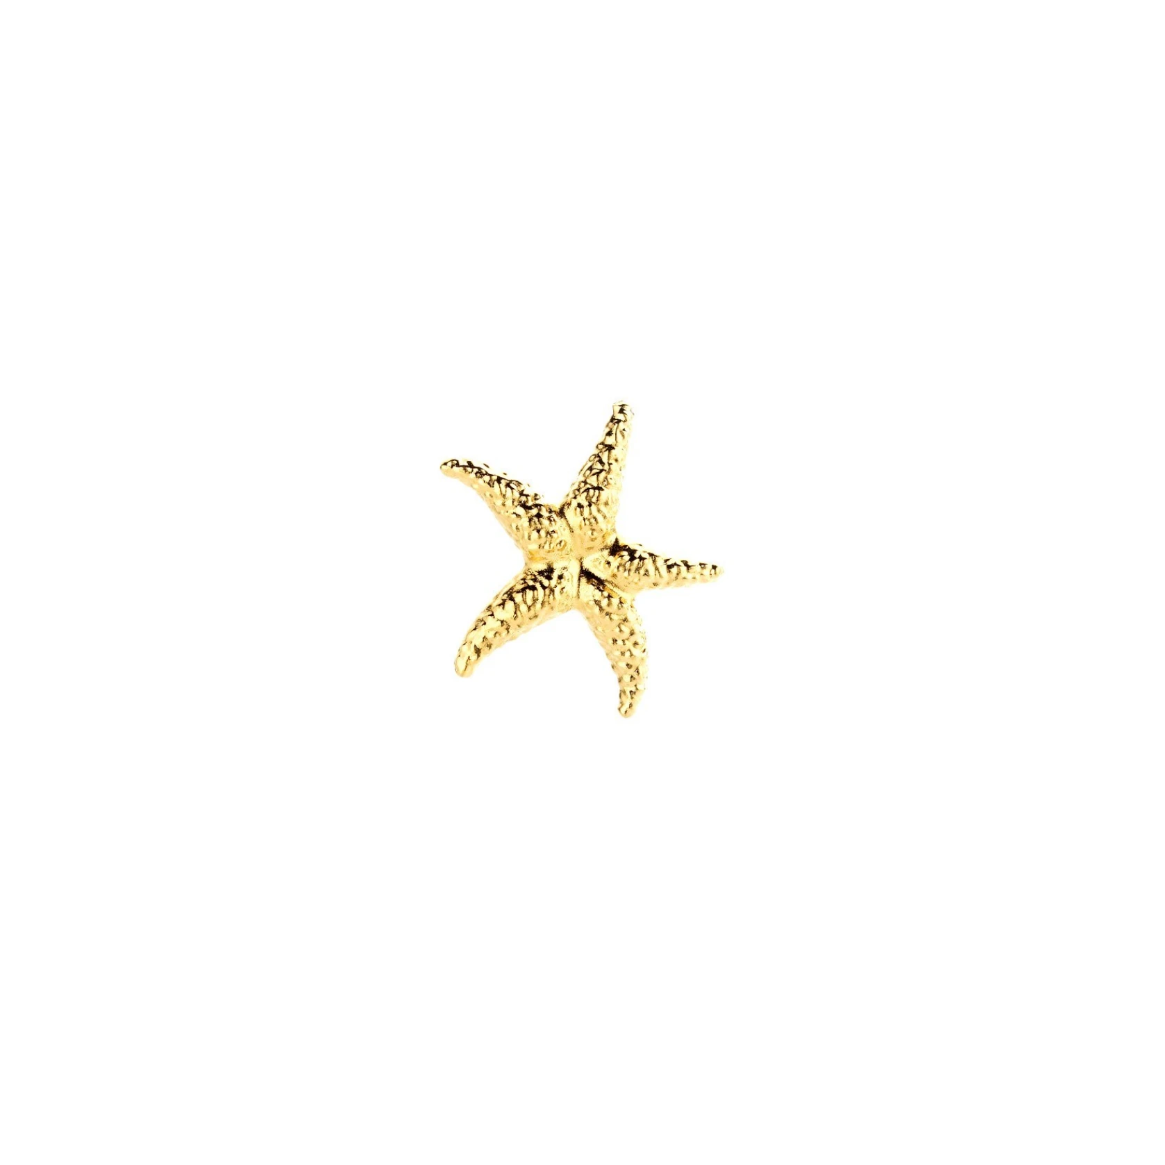 SINGLE Seastar gold earring - Souvenirs de Pomme